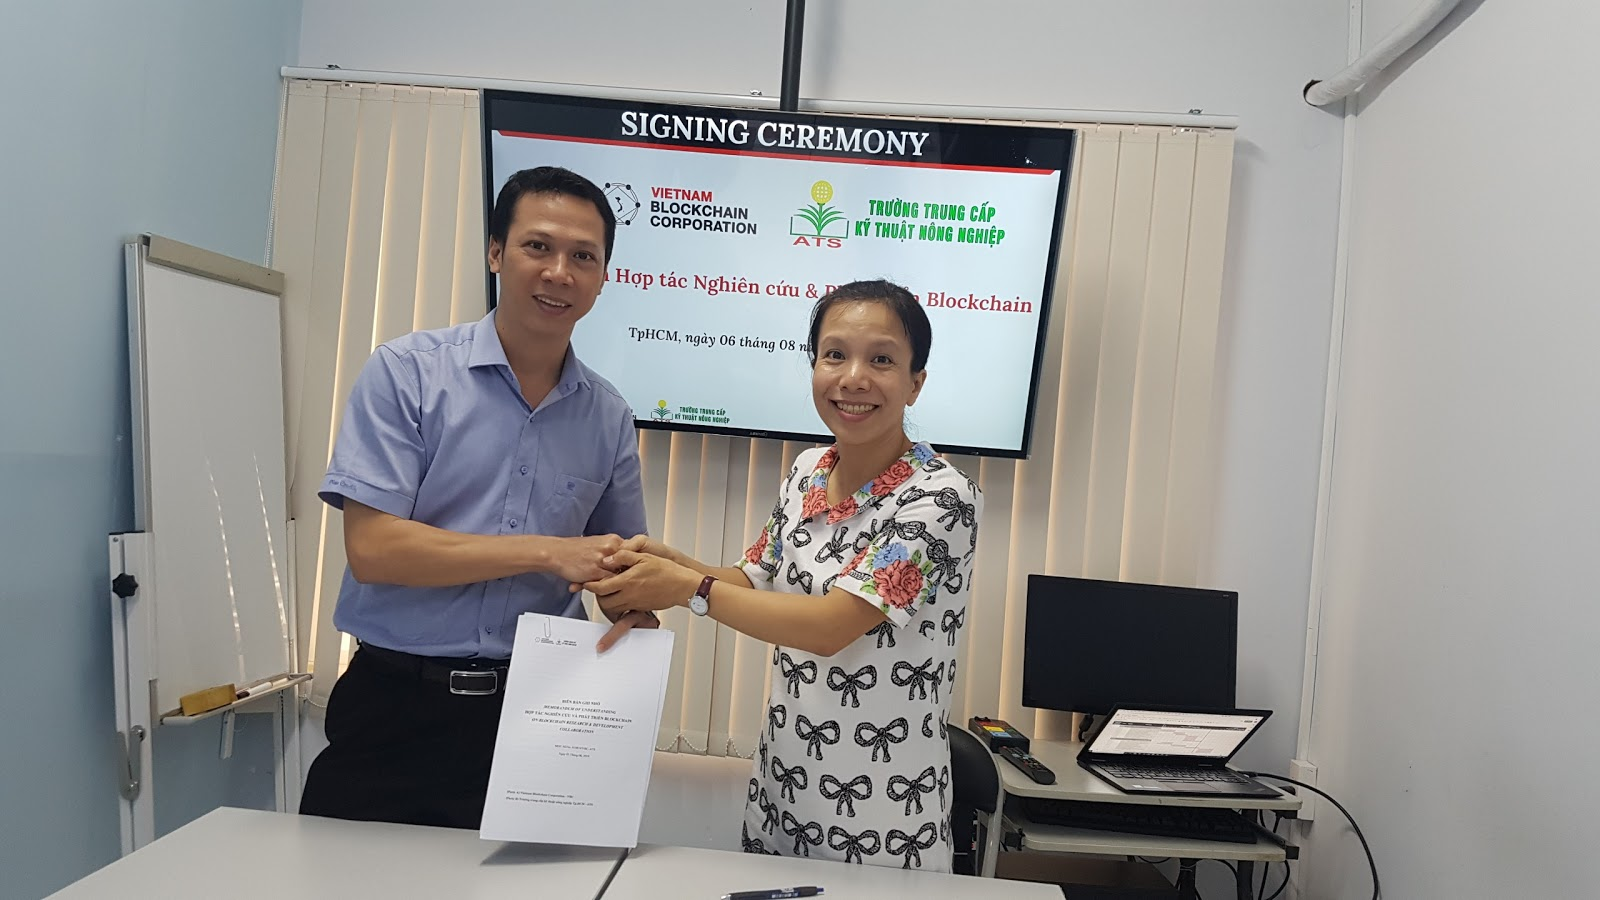 VBC cooperates with HCMC ATS to promote research and development of Blockchain technology